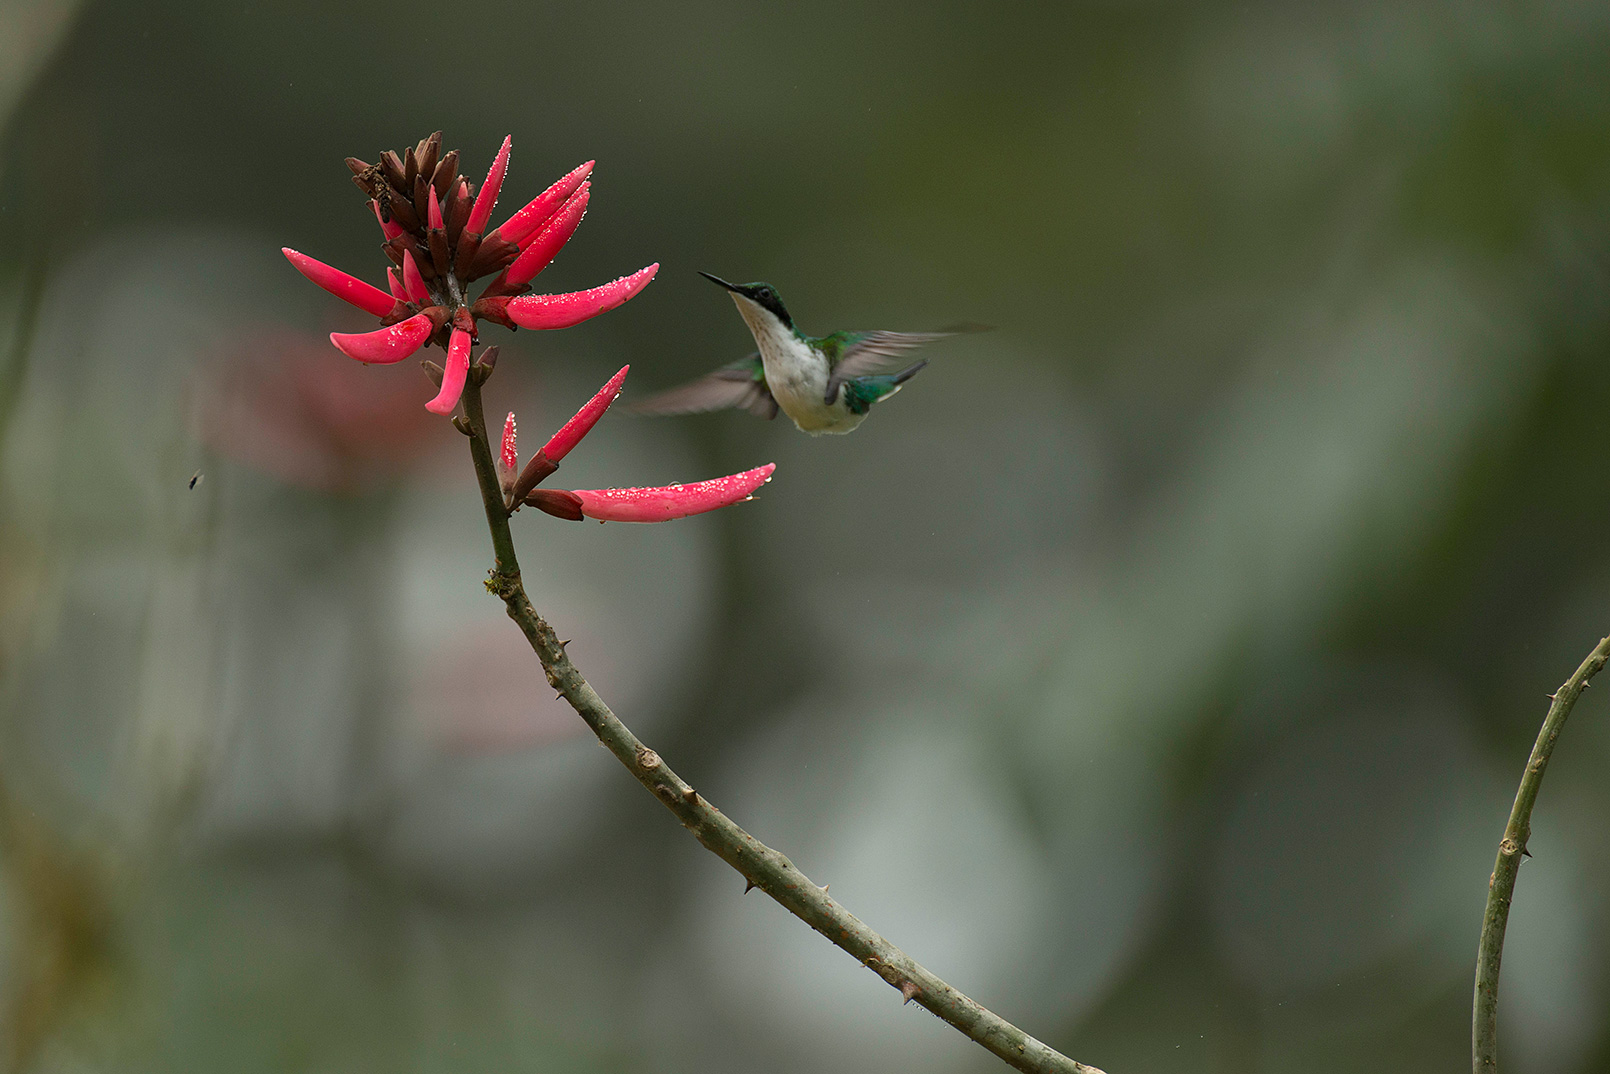 A hummingbird about to feed on the nectar of a bright red flower